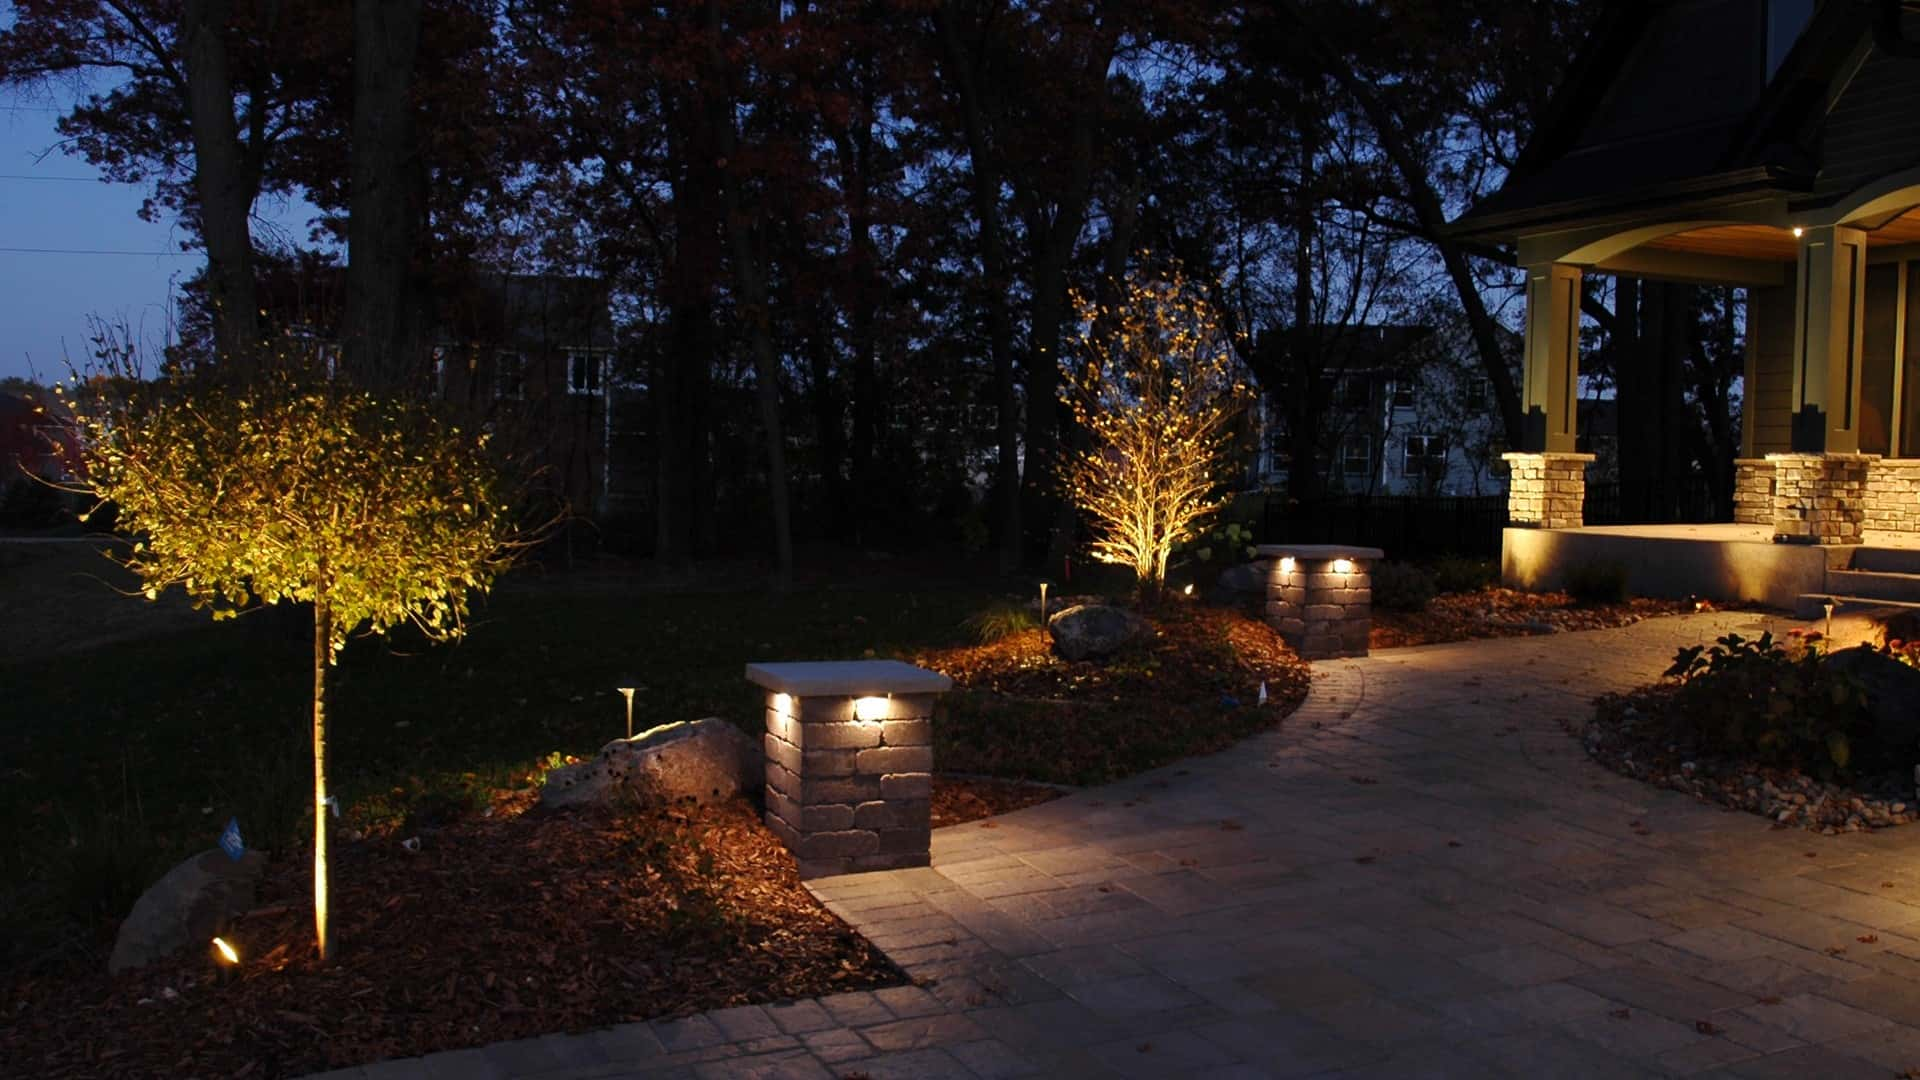 Outdoor space with tree uplighting